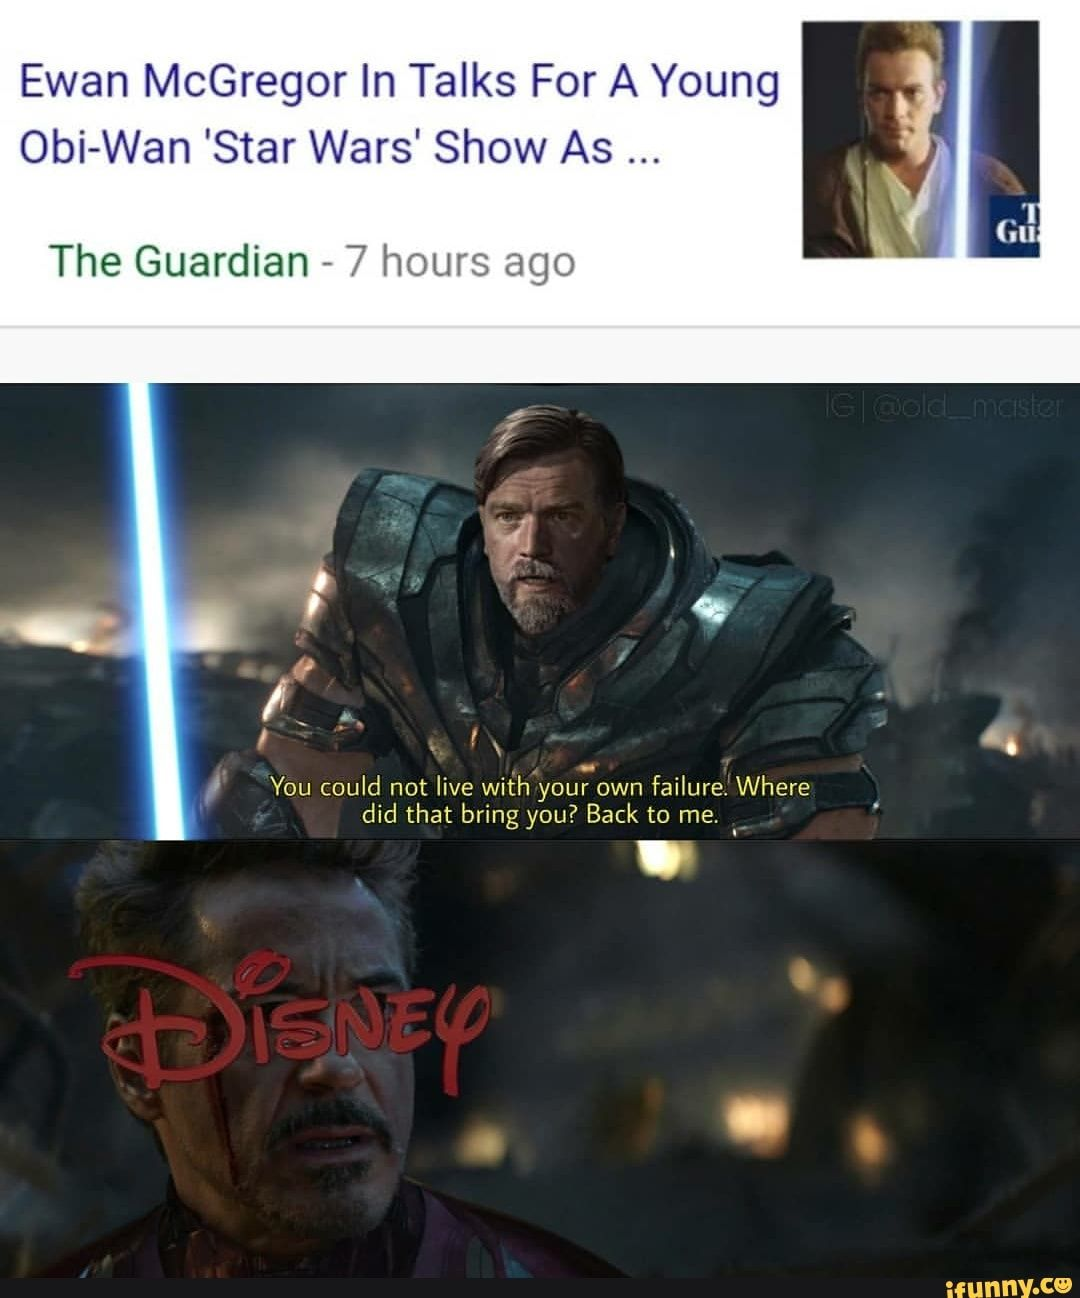 You Couldn T Live With Your Own Failure Meme : couldn, failure, McGregor, Talks, Young, Obi-Wan, 'Star, Wars', Guardian, Hours, Could, Yourown, Failure., Where, Bring